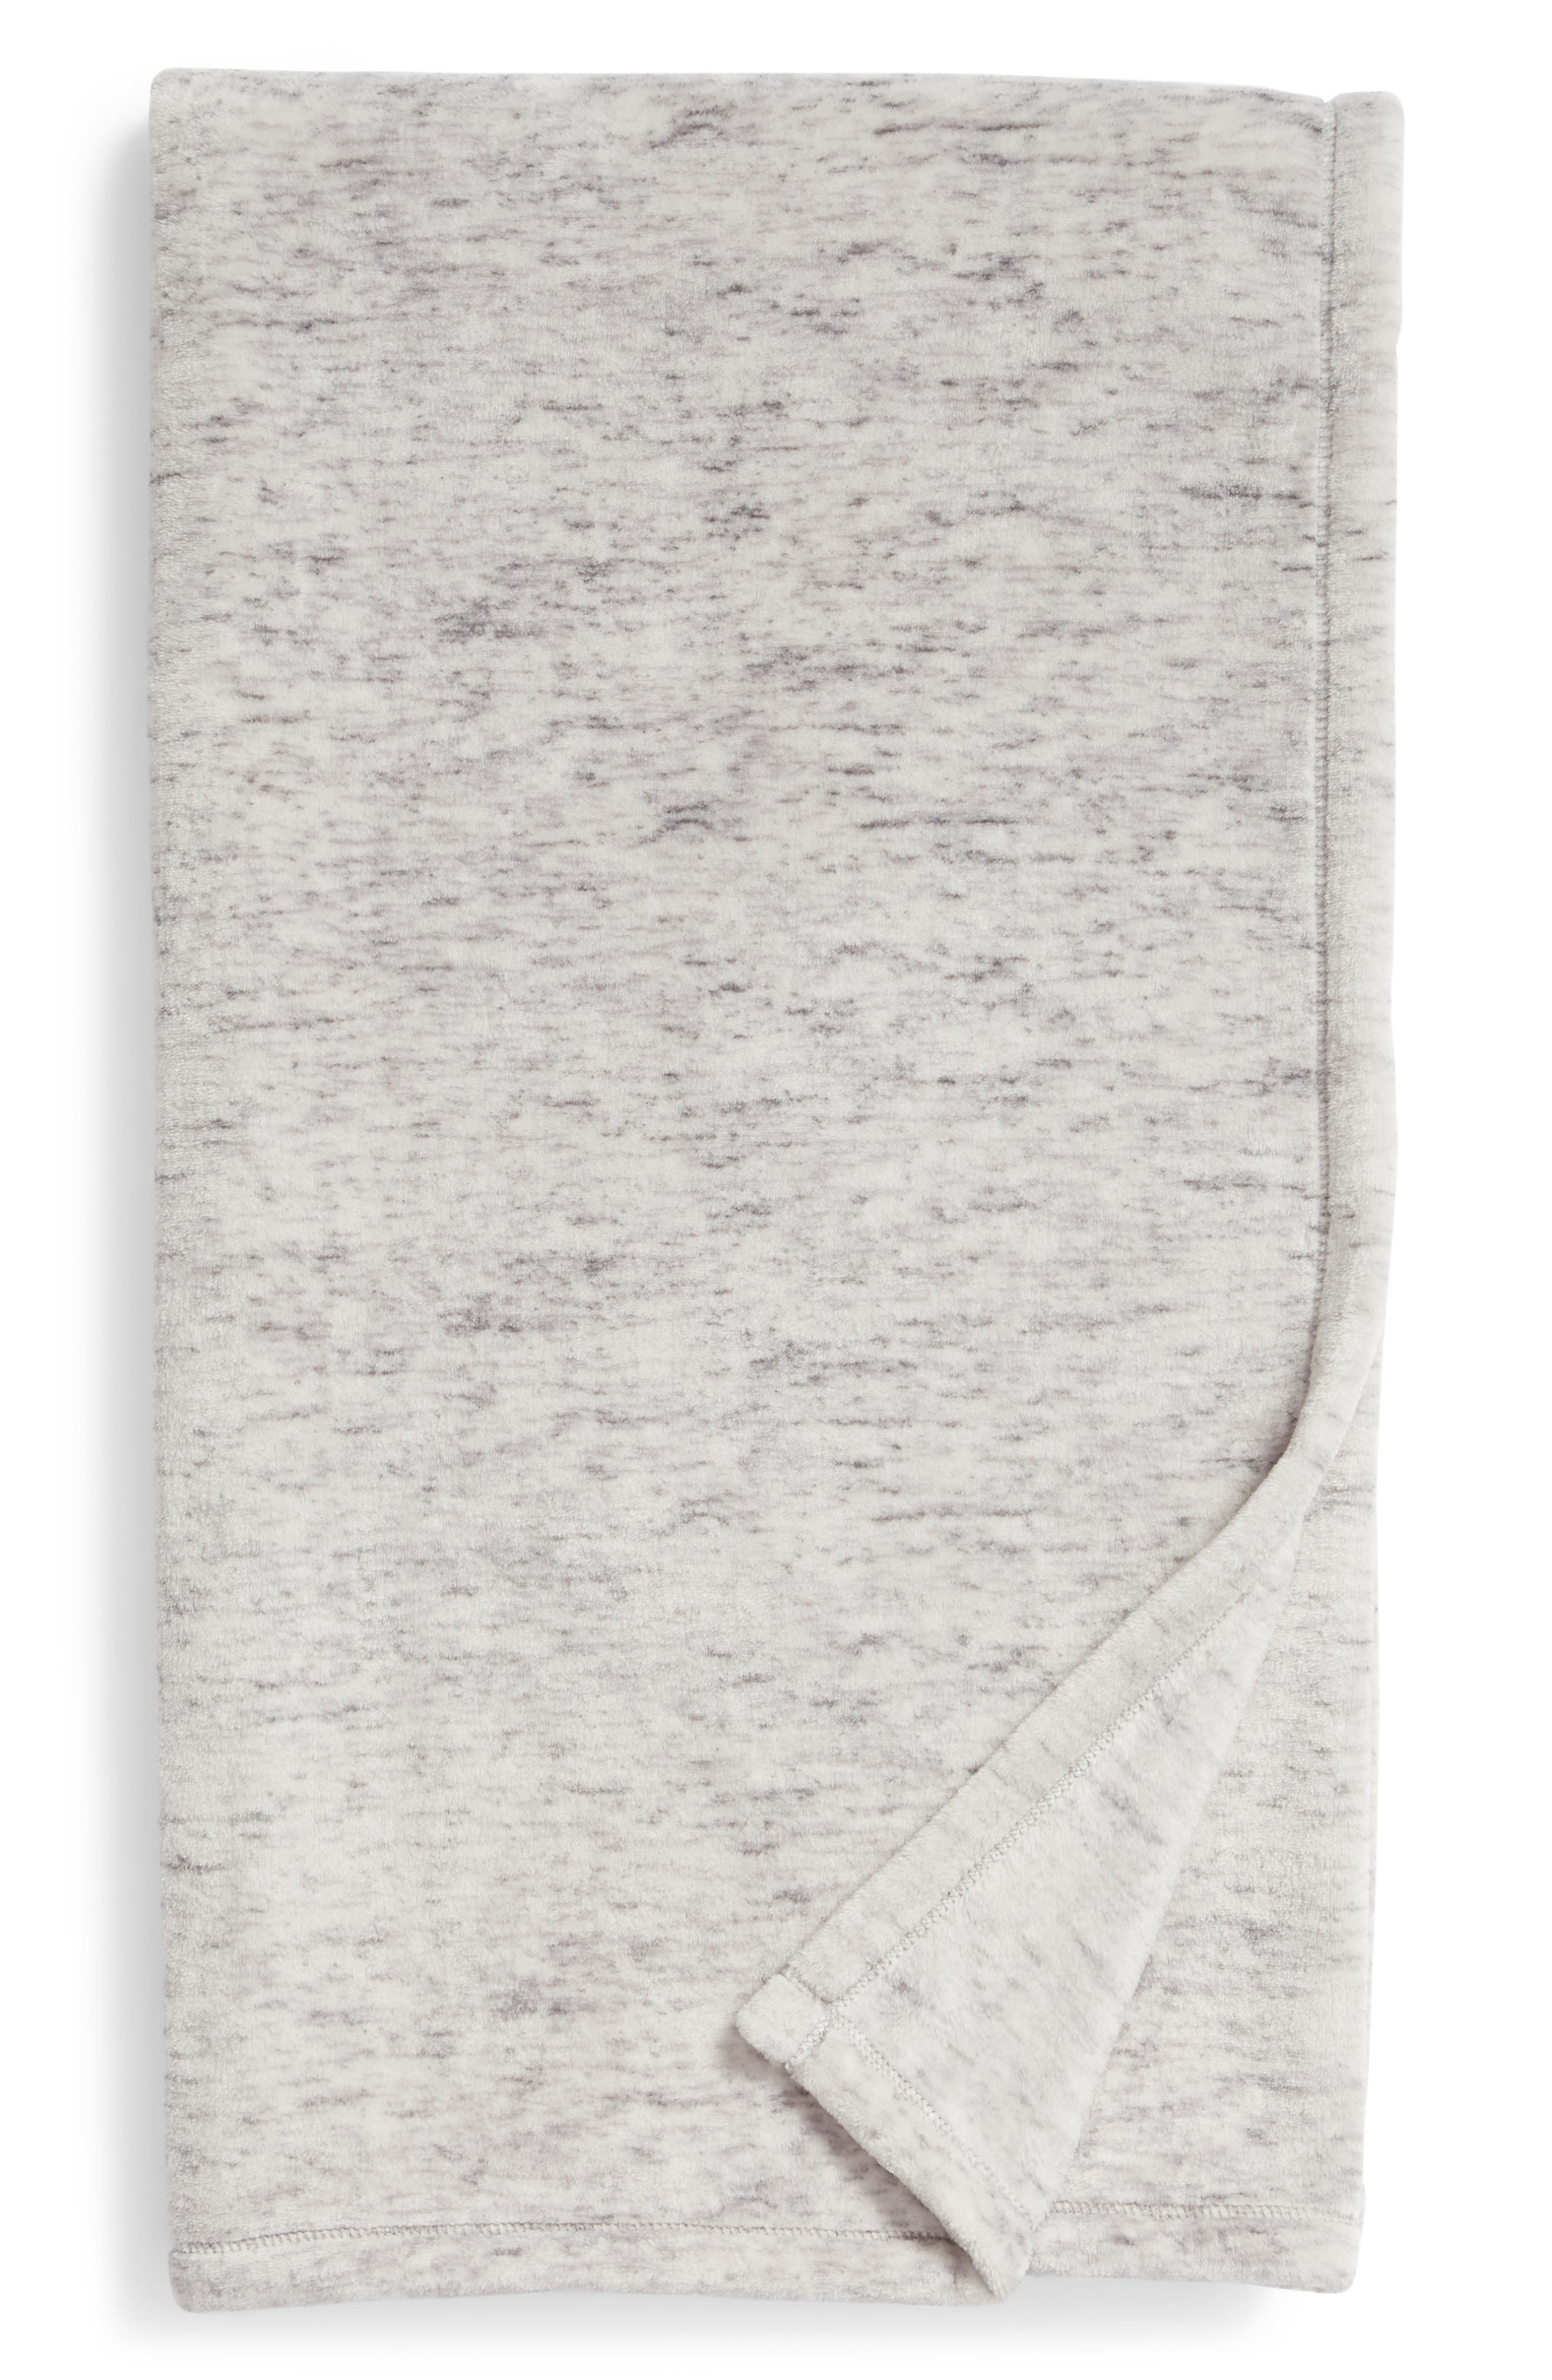 NORDSTROM AT HOME, Heathered Throw, Main thumbnail 1, color, GREY FROST